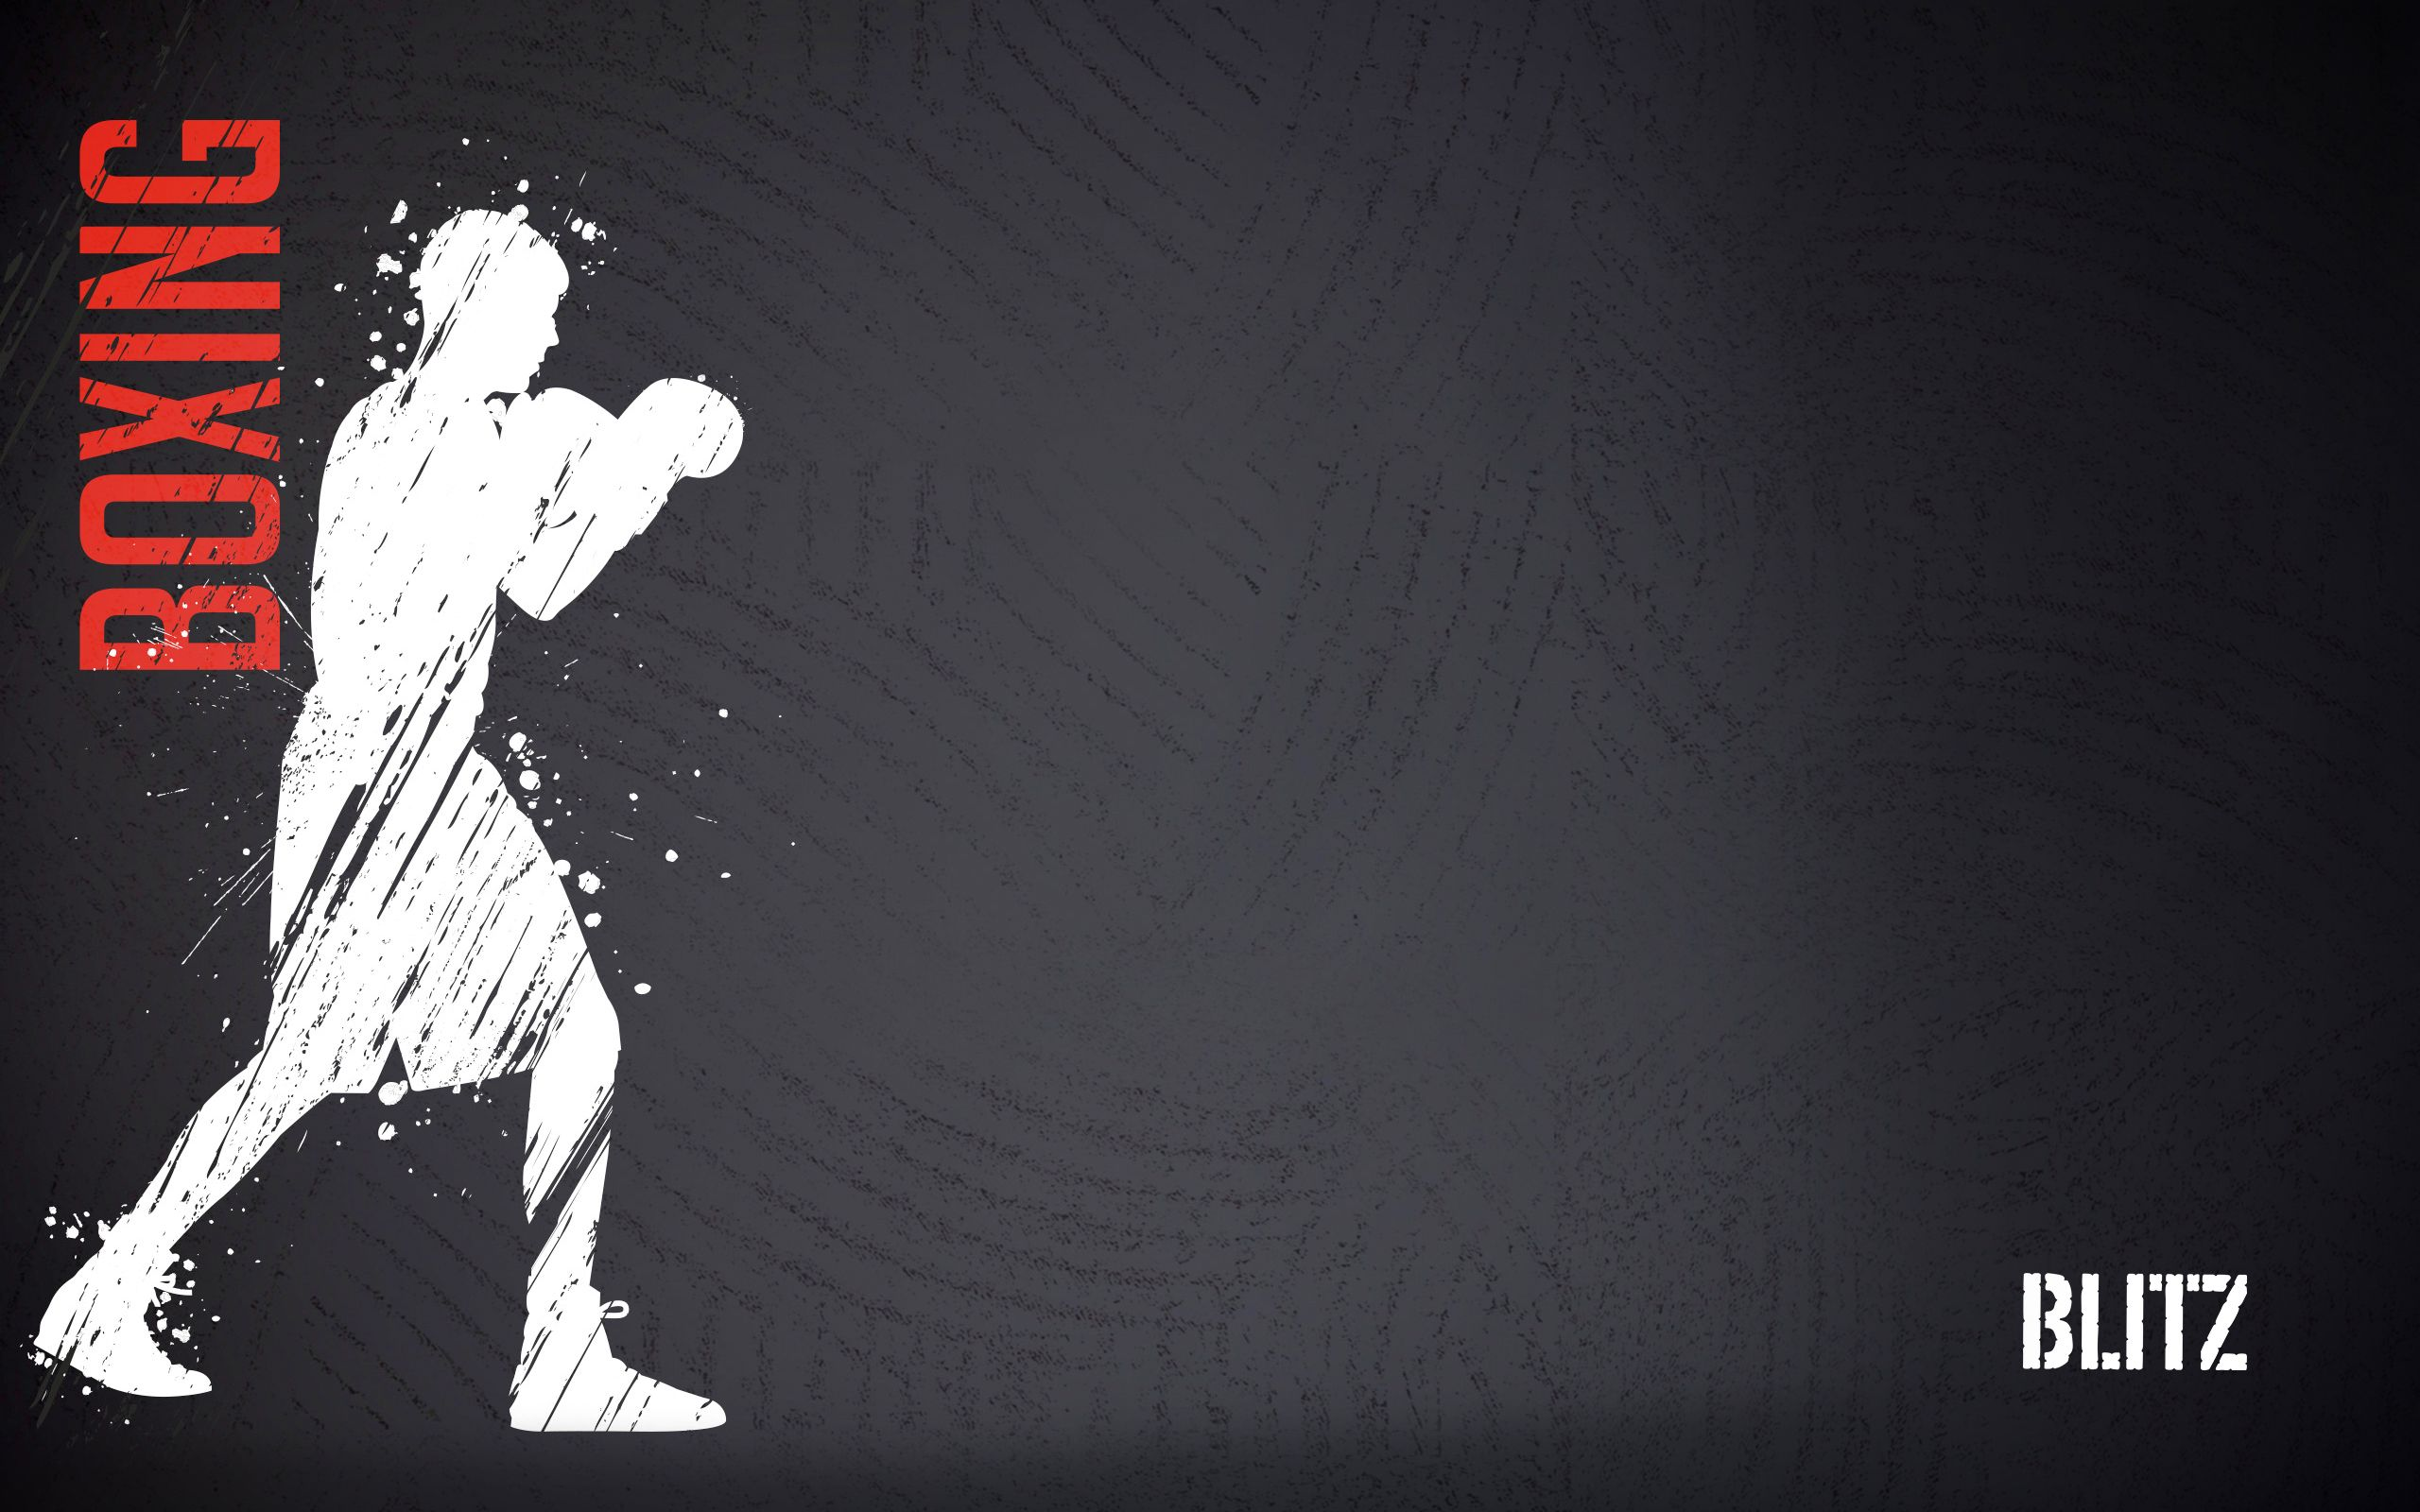 2560x1600 - Boxing Wallpapers 17